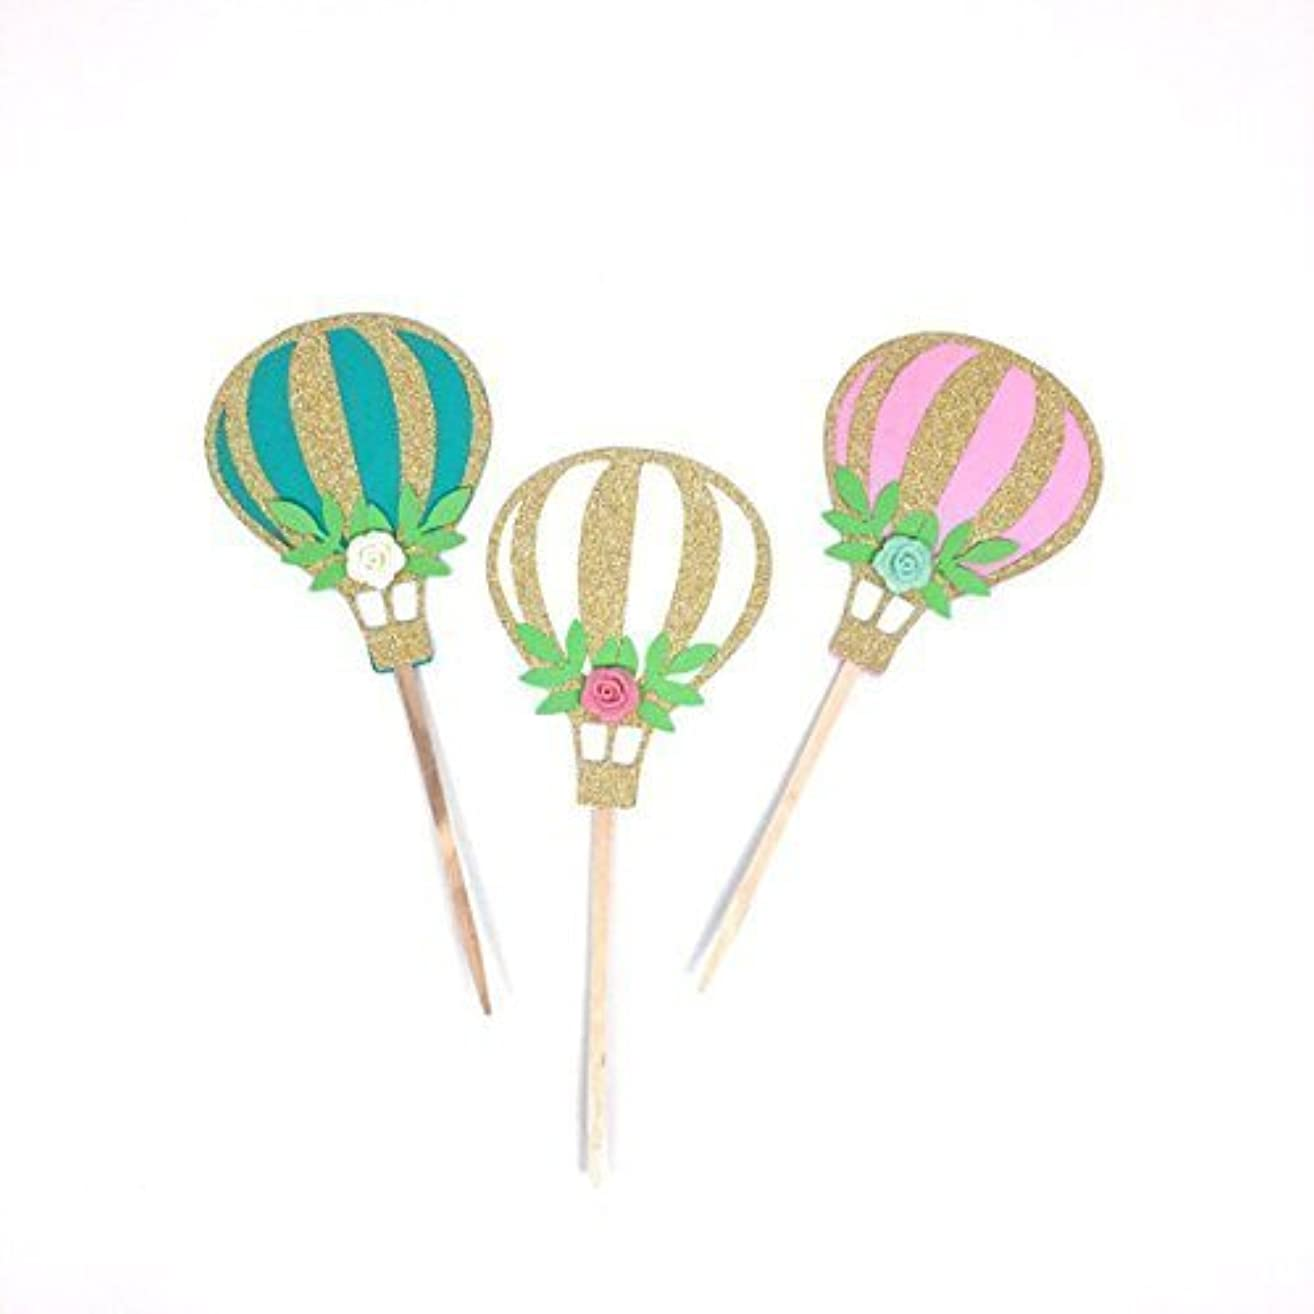 10 pcs Up Up & Away flower roses floral cupcake topper Gold Glitter Hot Air Balloon Toddler boy girl Birthday Baby Shower Wedding Theme